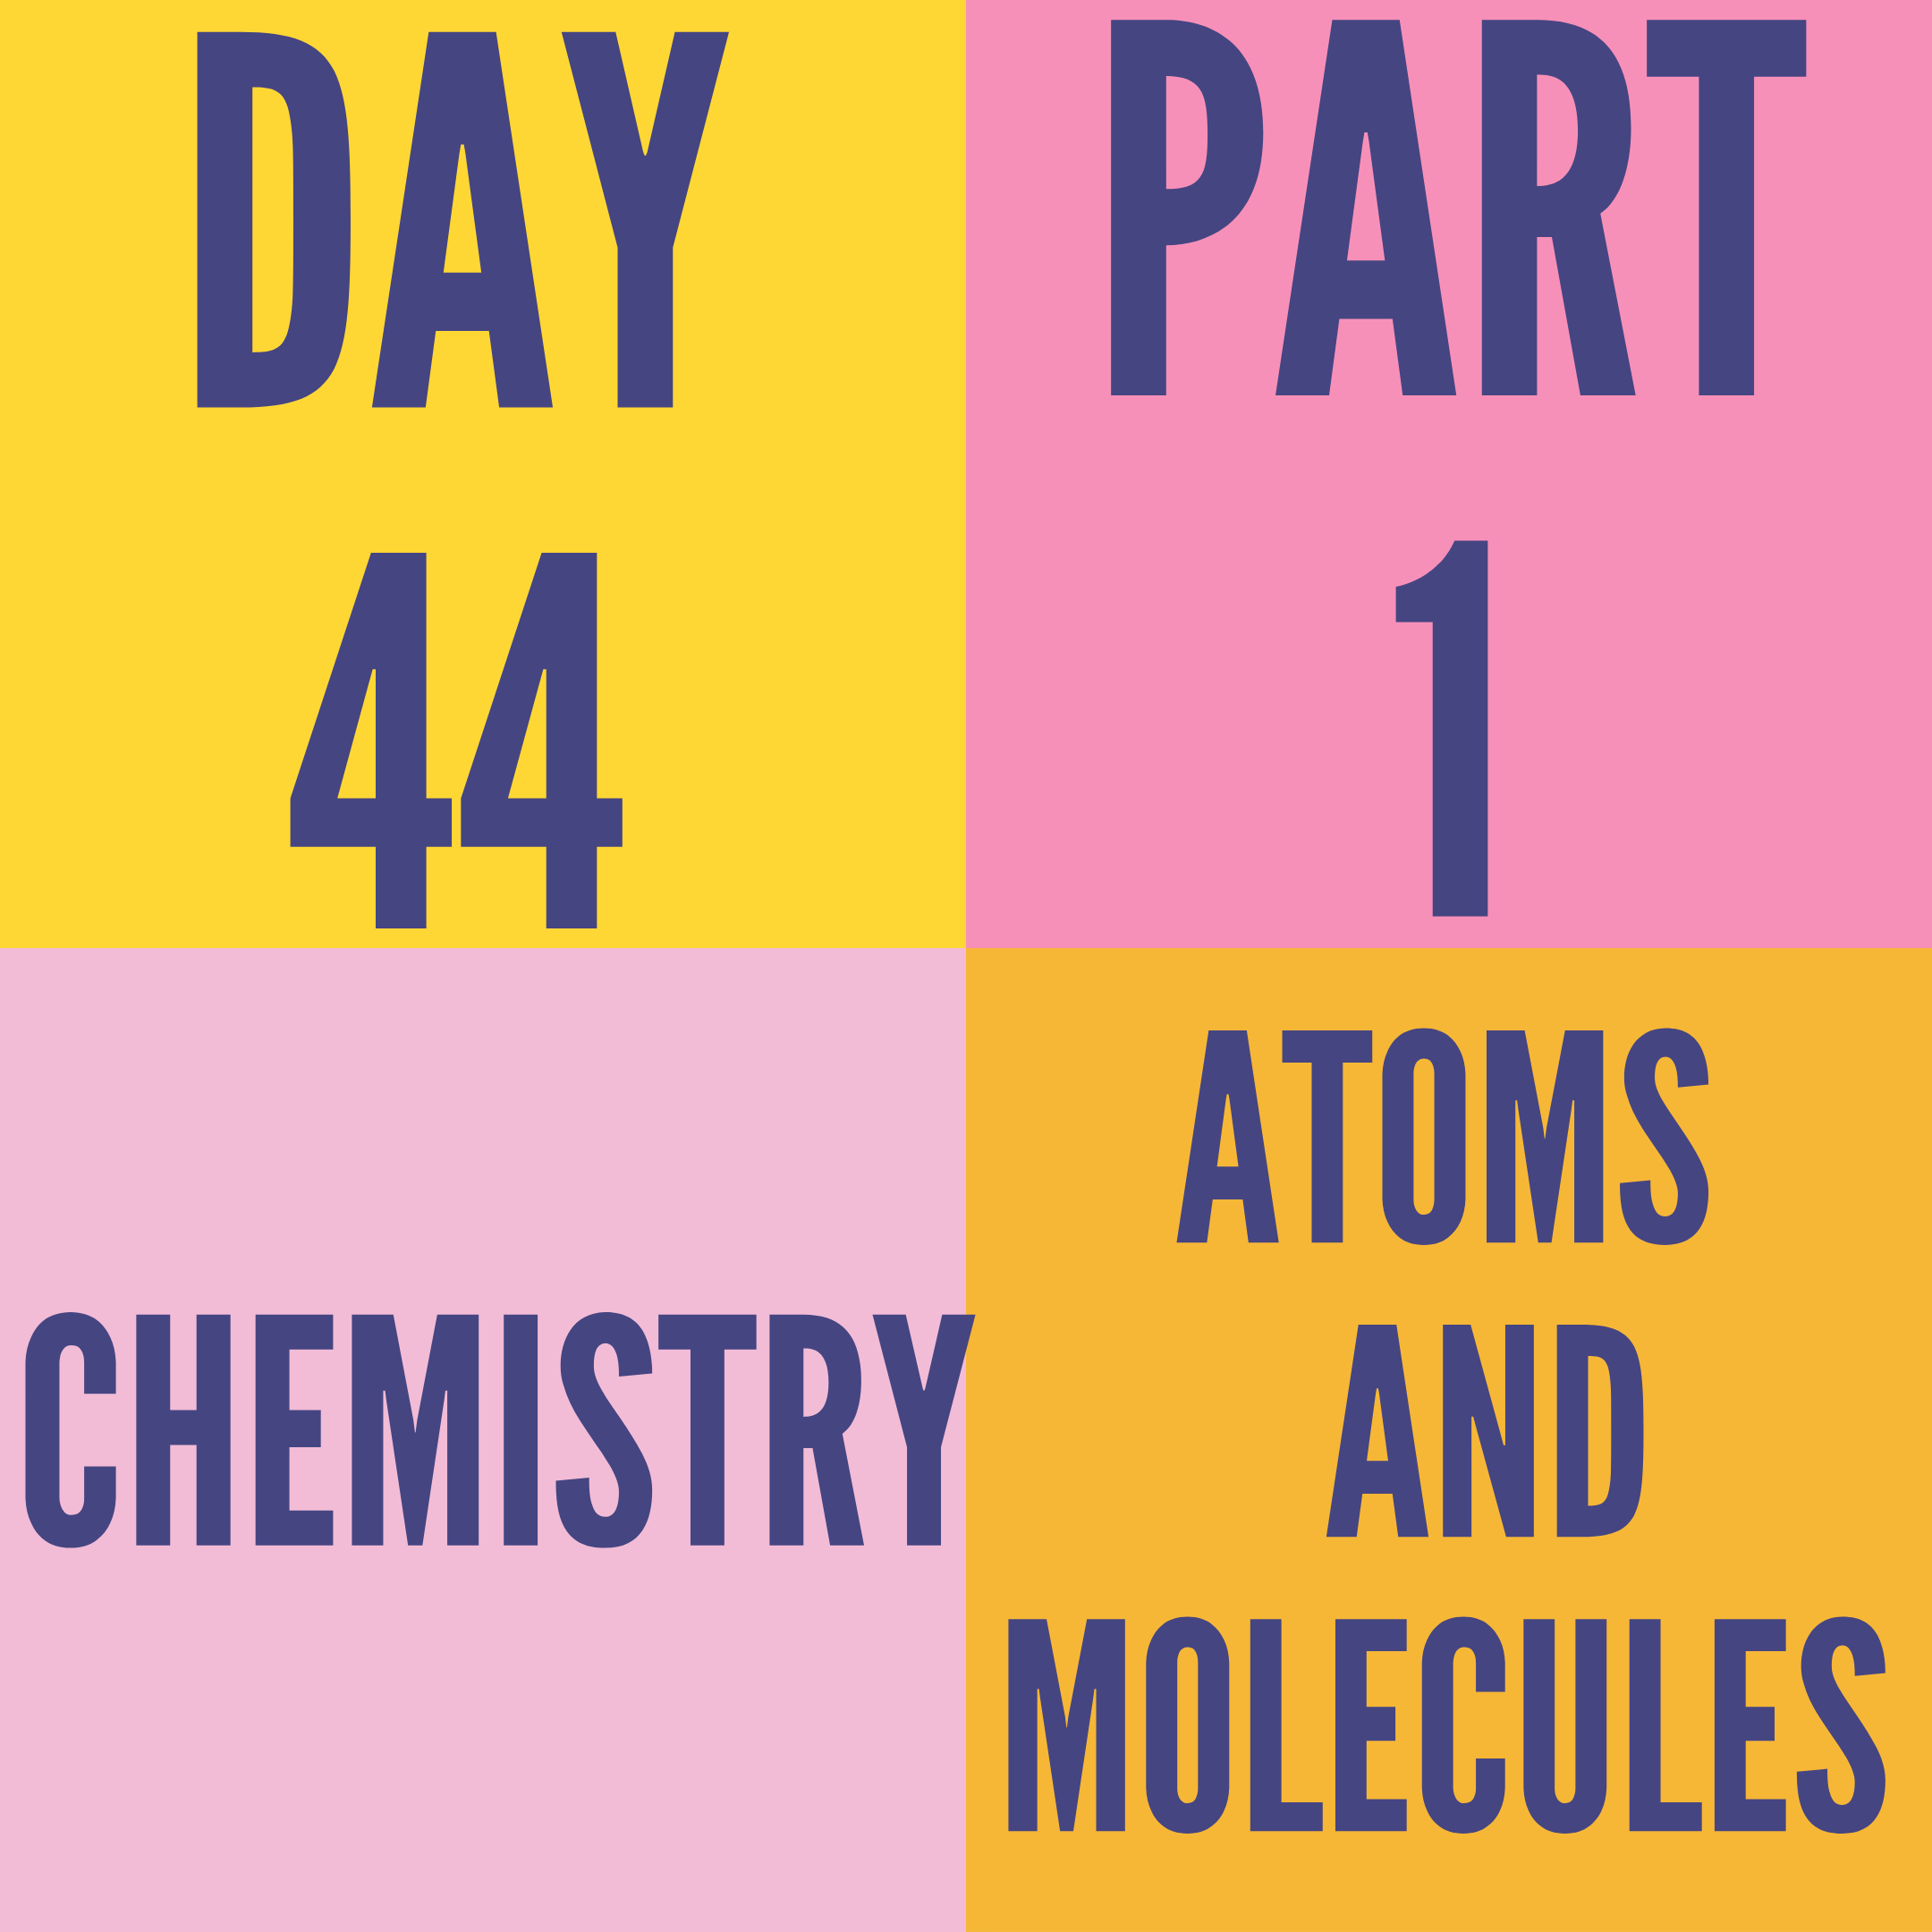 DAY-44 PART-1 ATOMS AND MOLECULES